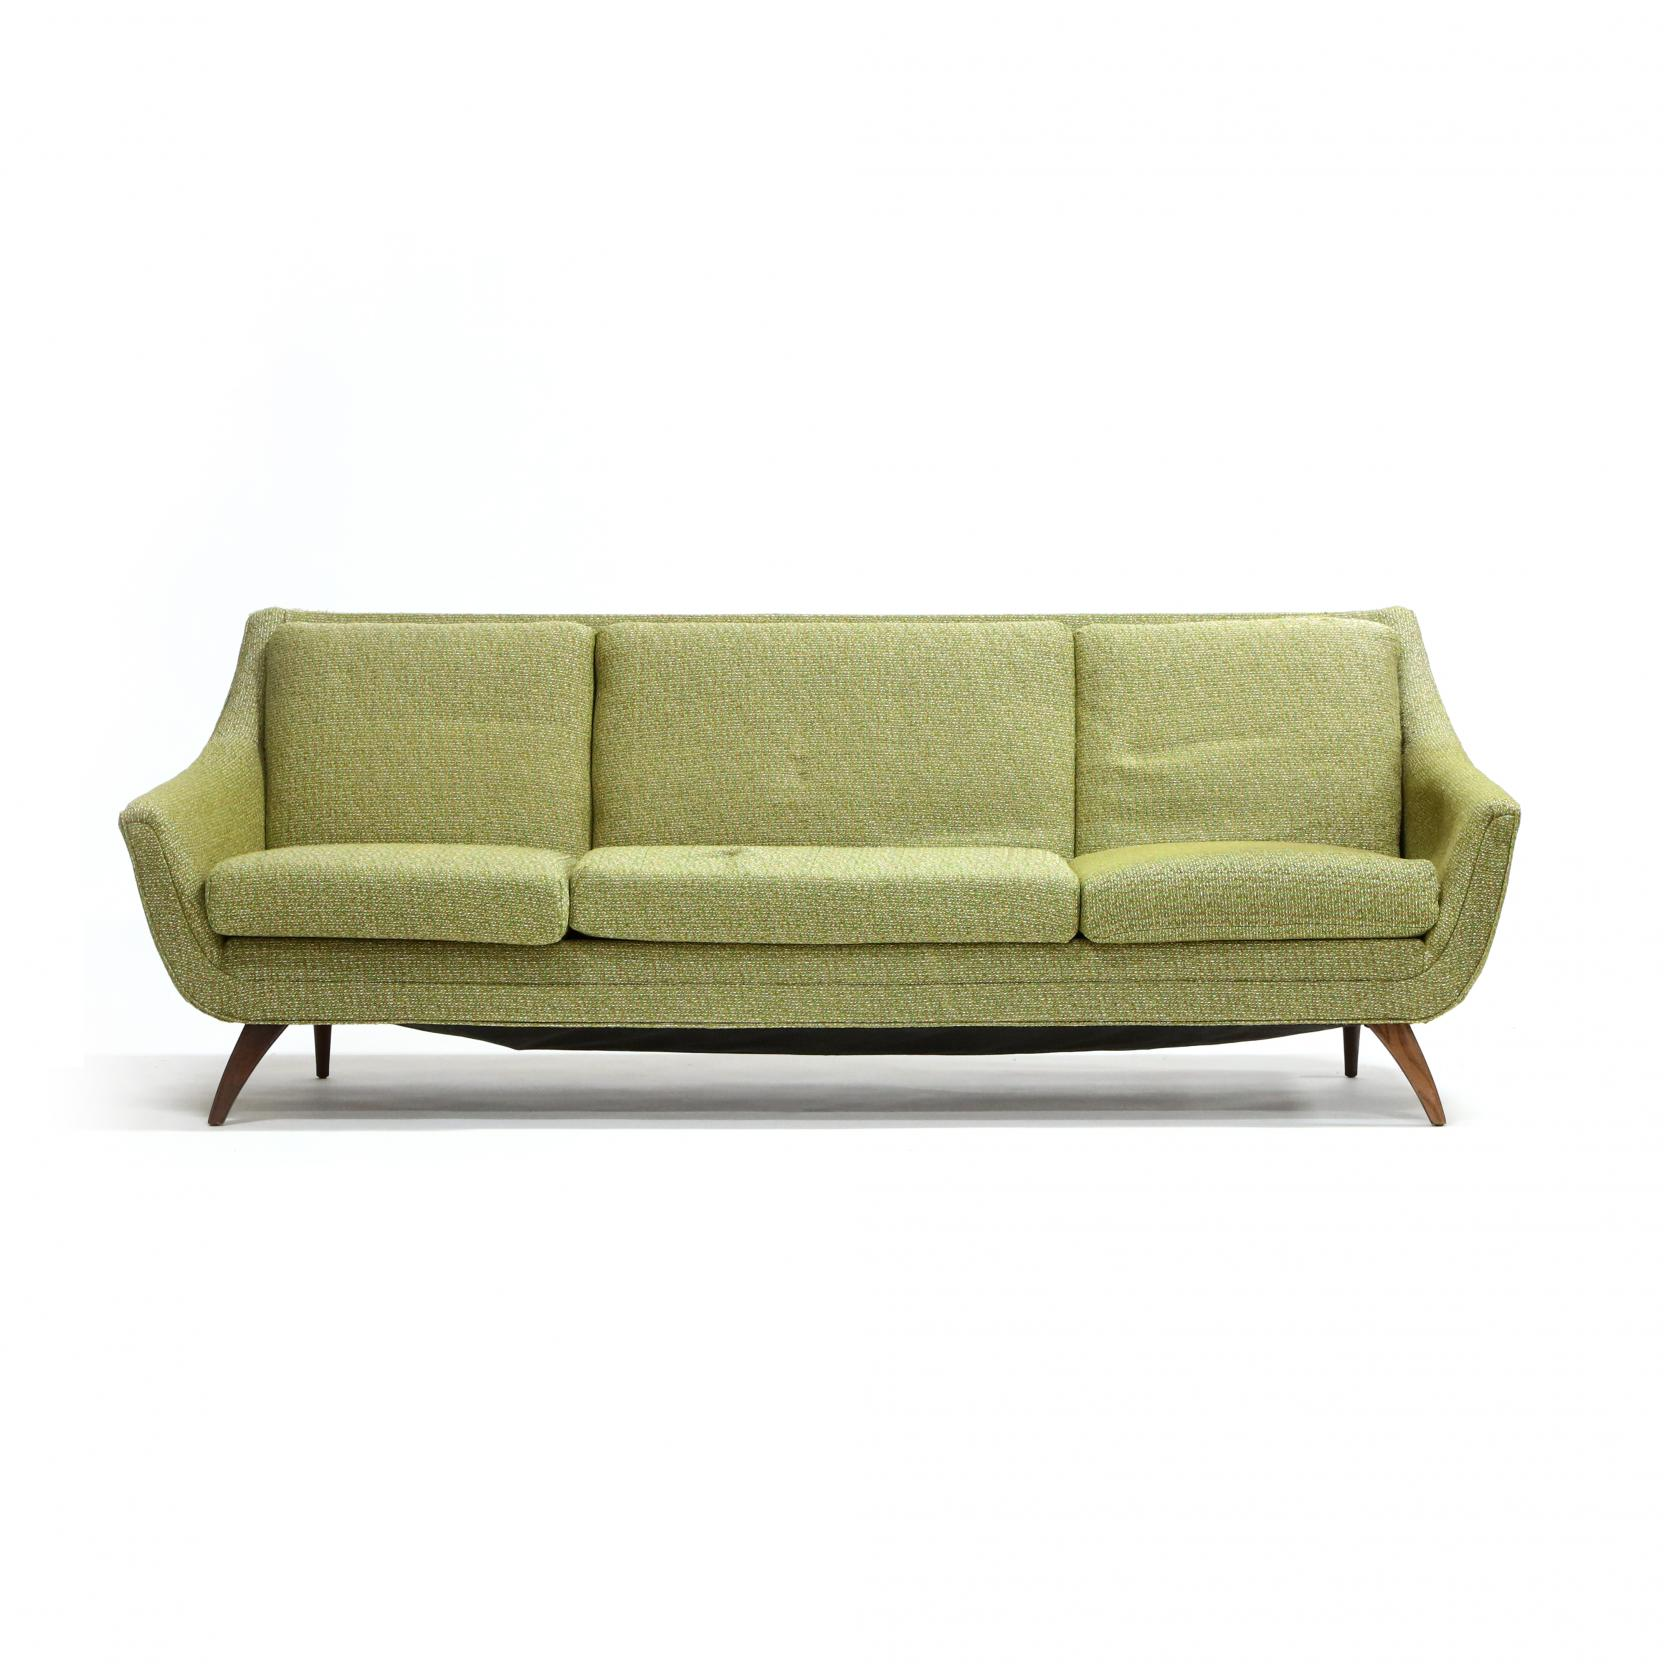 bassett-furniture-mid-century-sofa